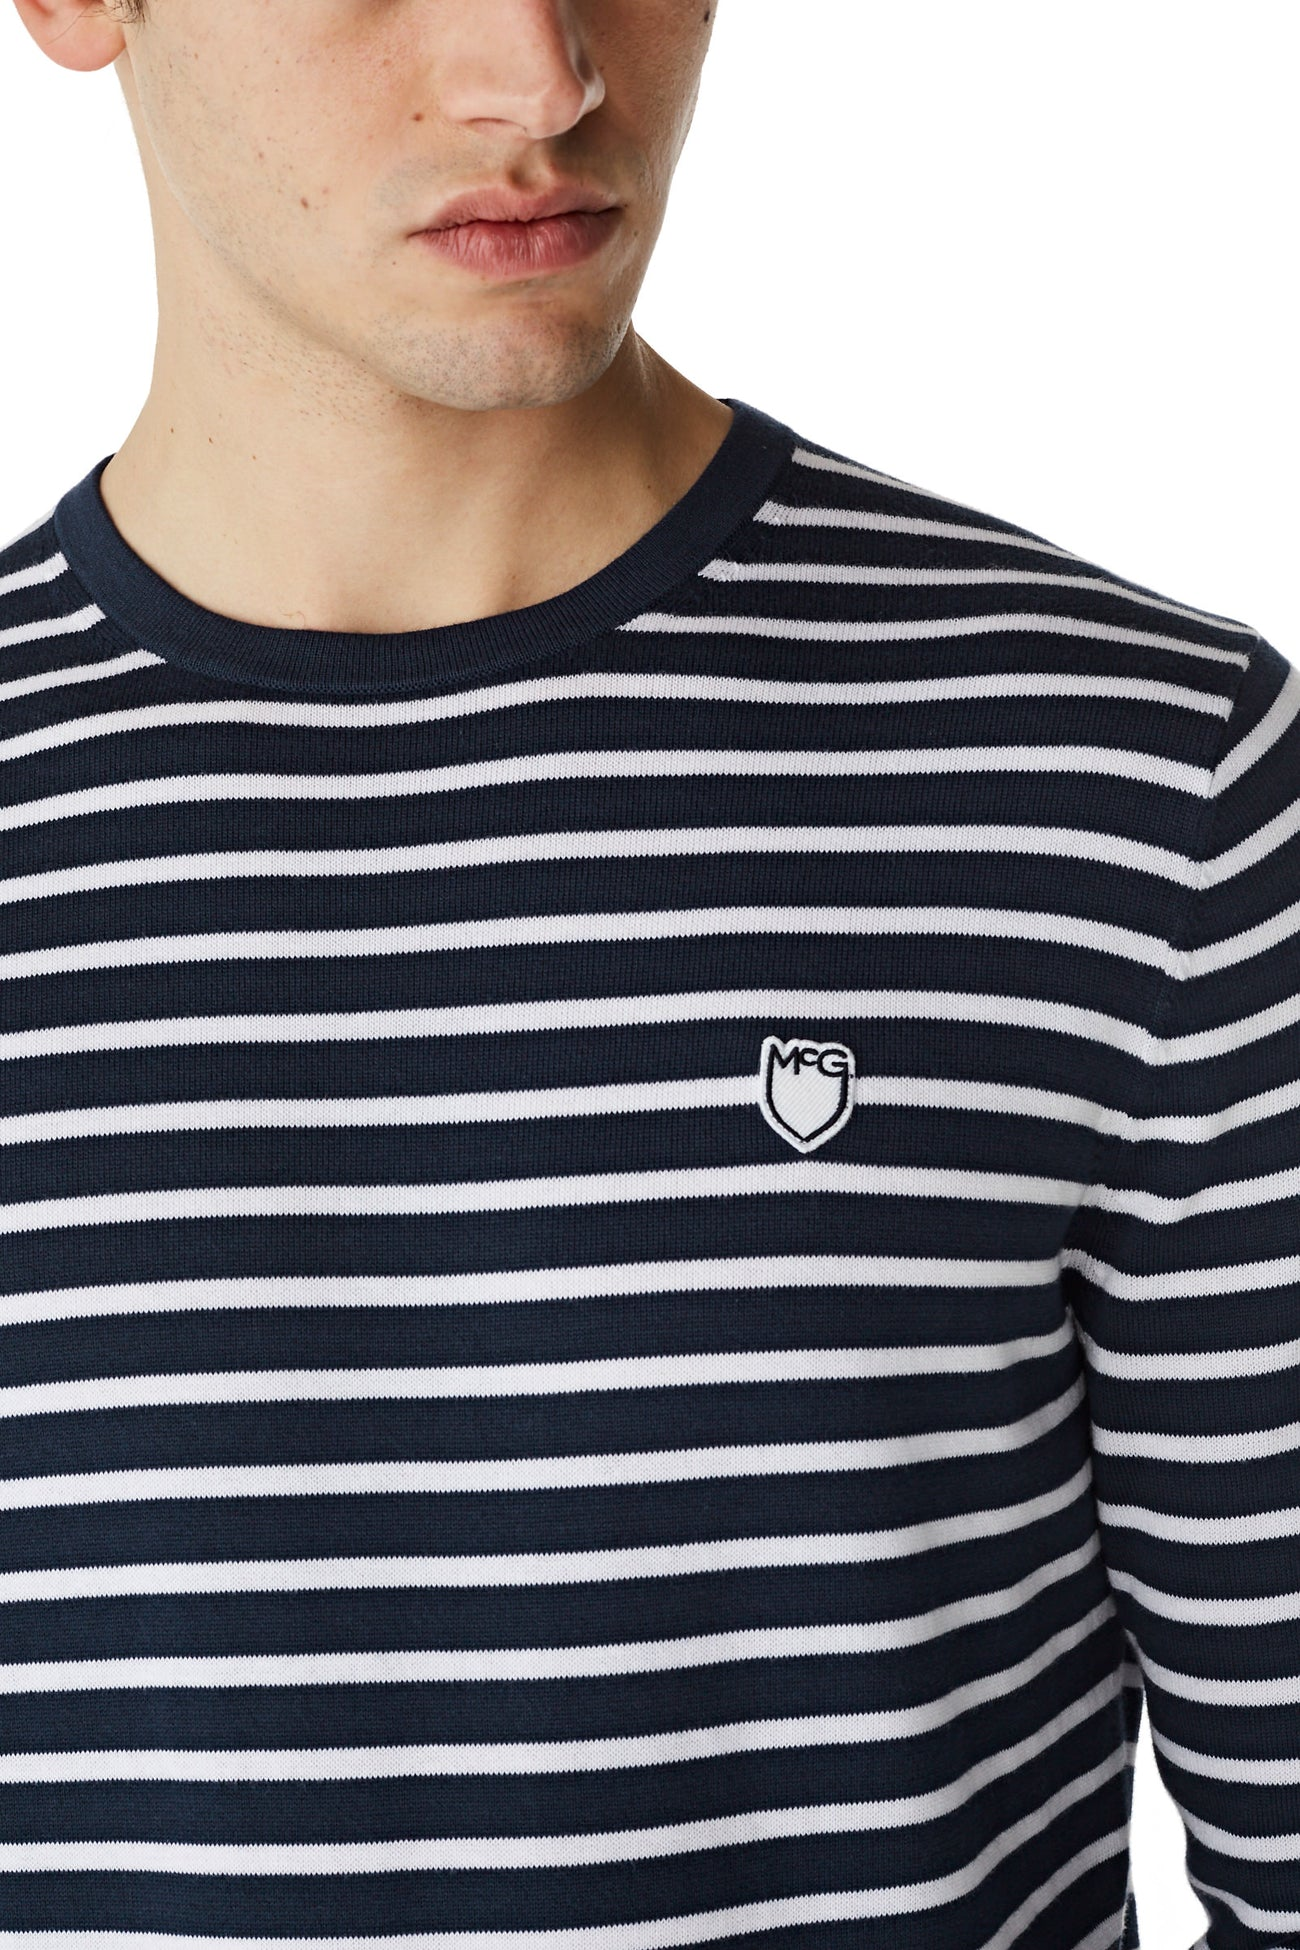 McG Striped sweater with round neck